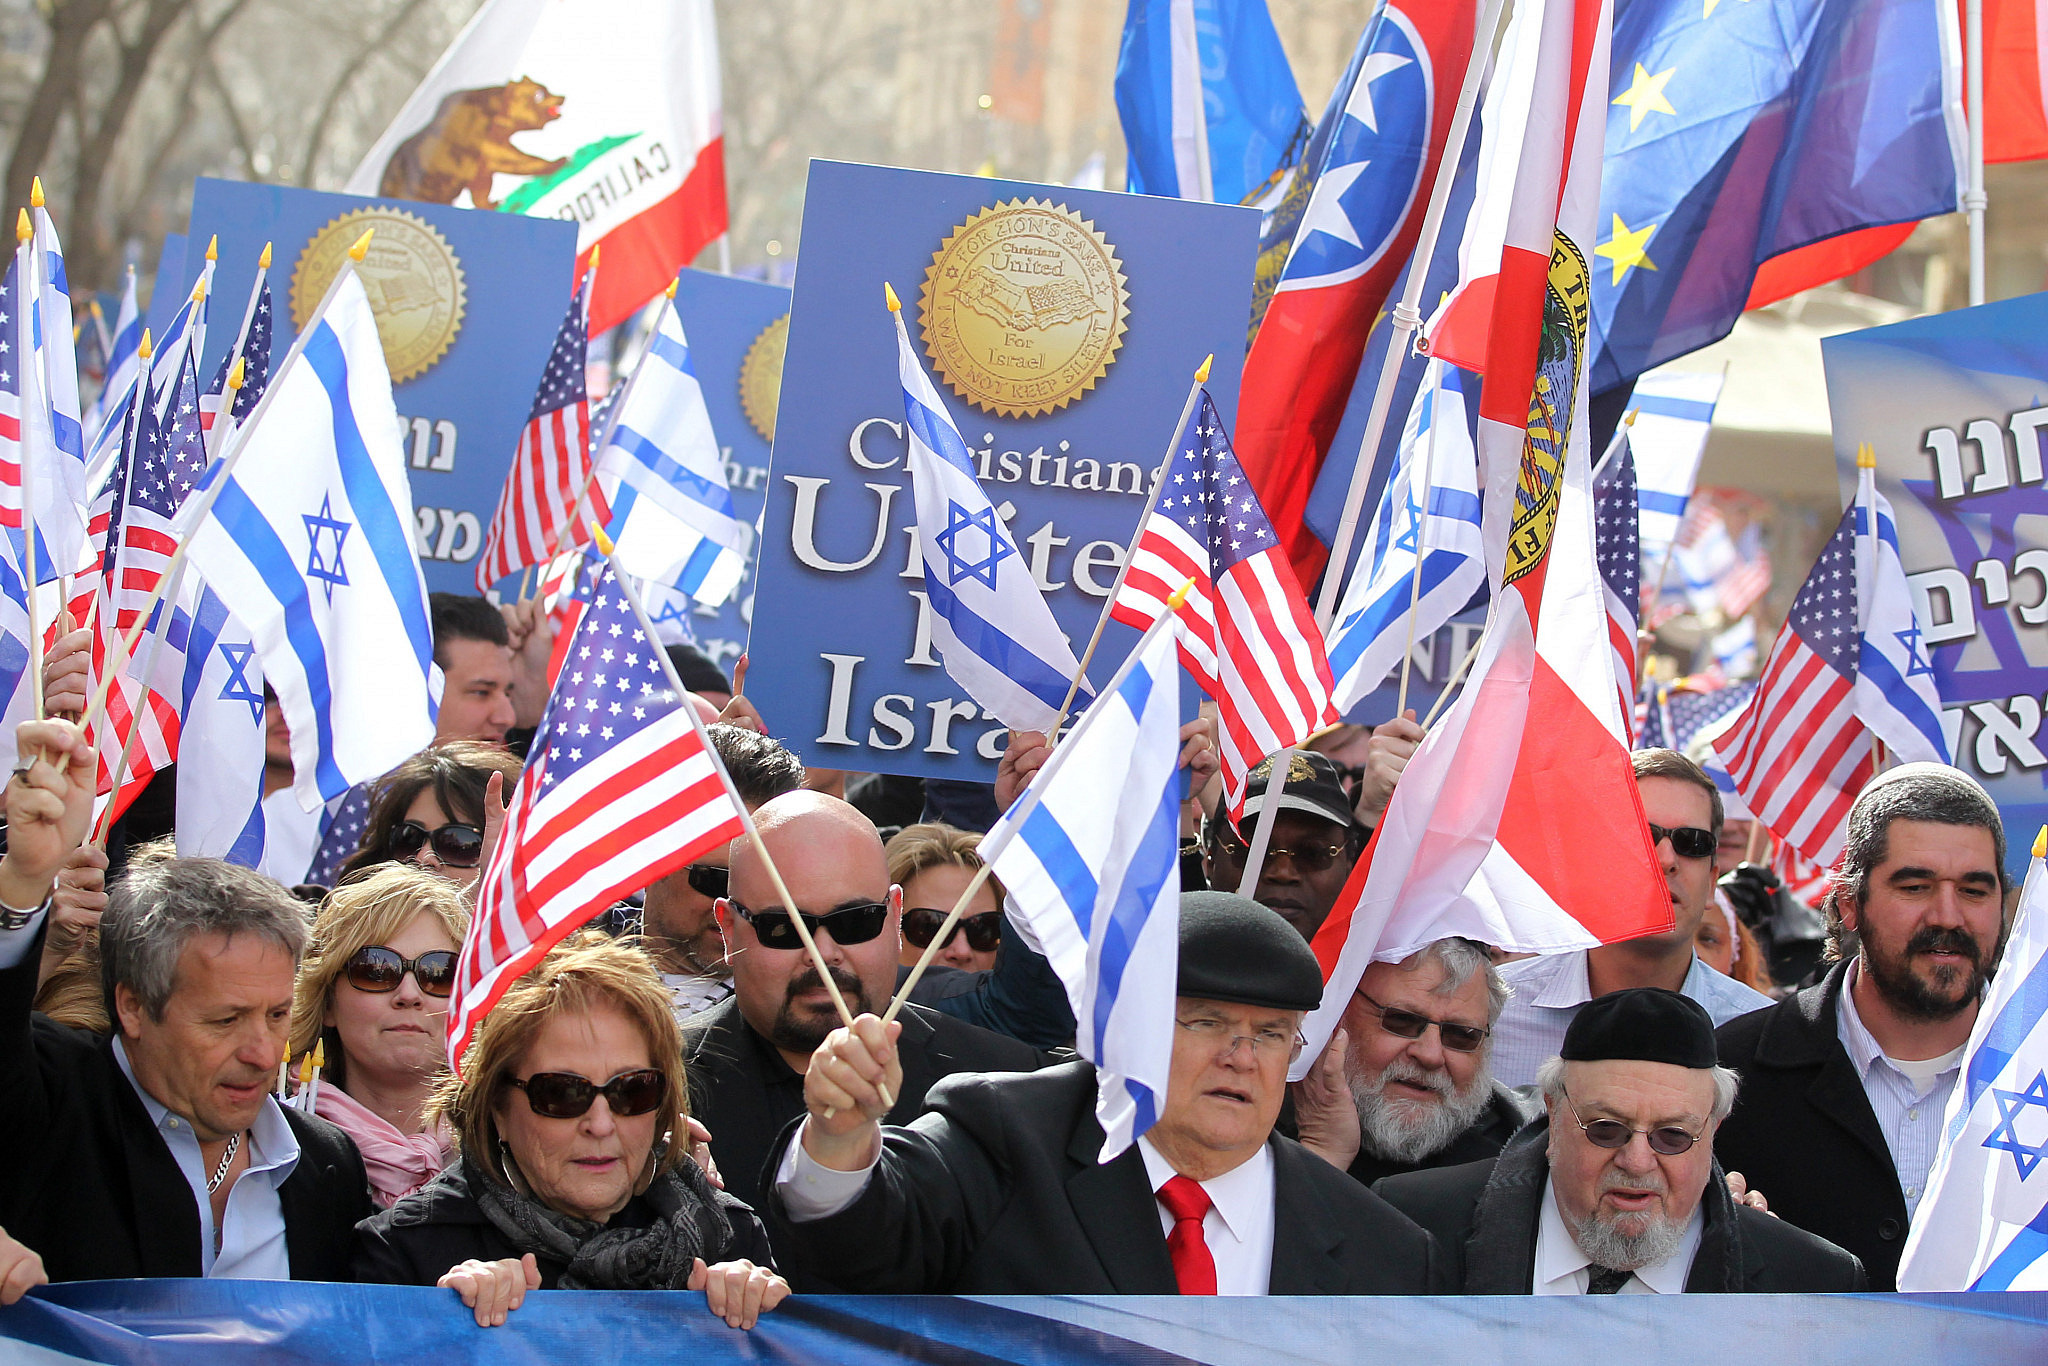 Members of Christians United for Israel at a pro-Israel march in downtown Jerusalem, March 19, 2012. (Nati Shohat Flash90)